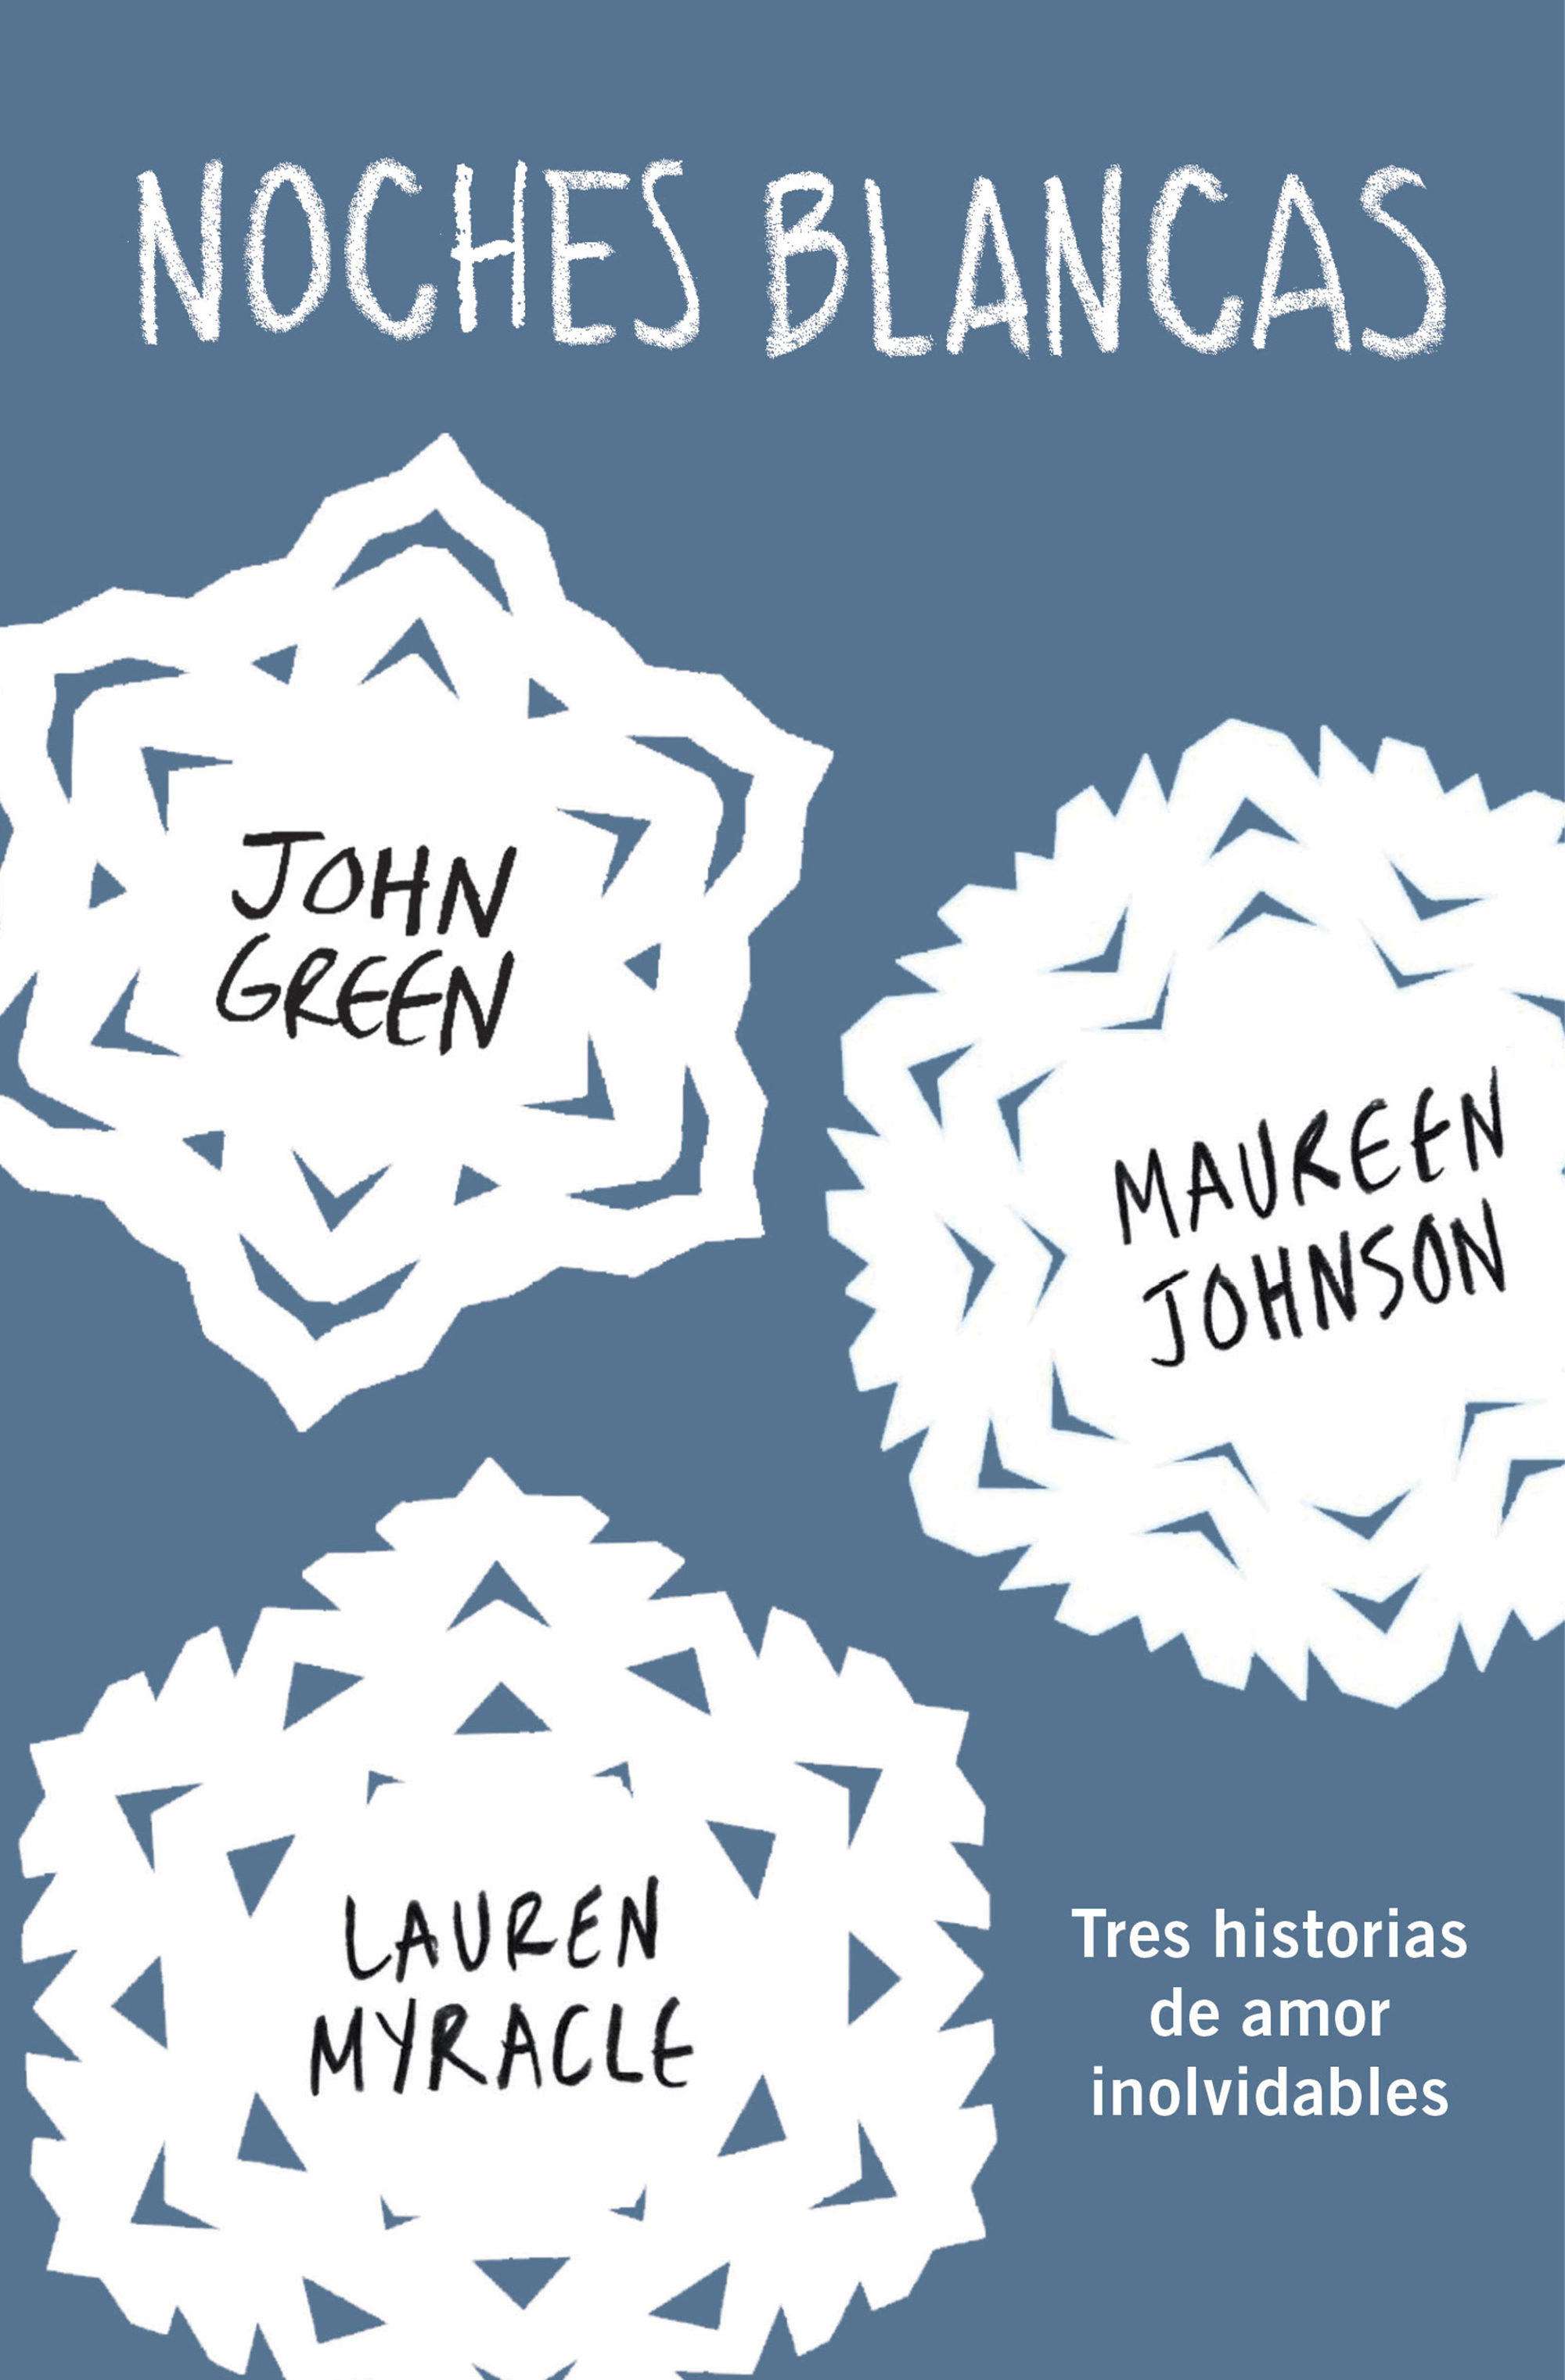 Noches Blancas (ebook)john Greenerin Langemaure Johnson9788415594871